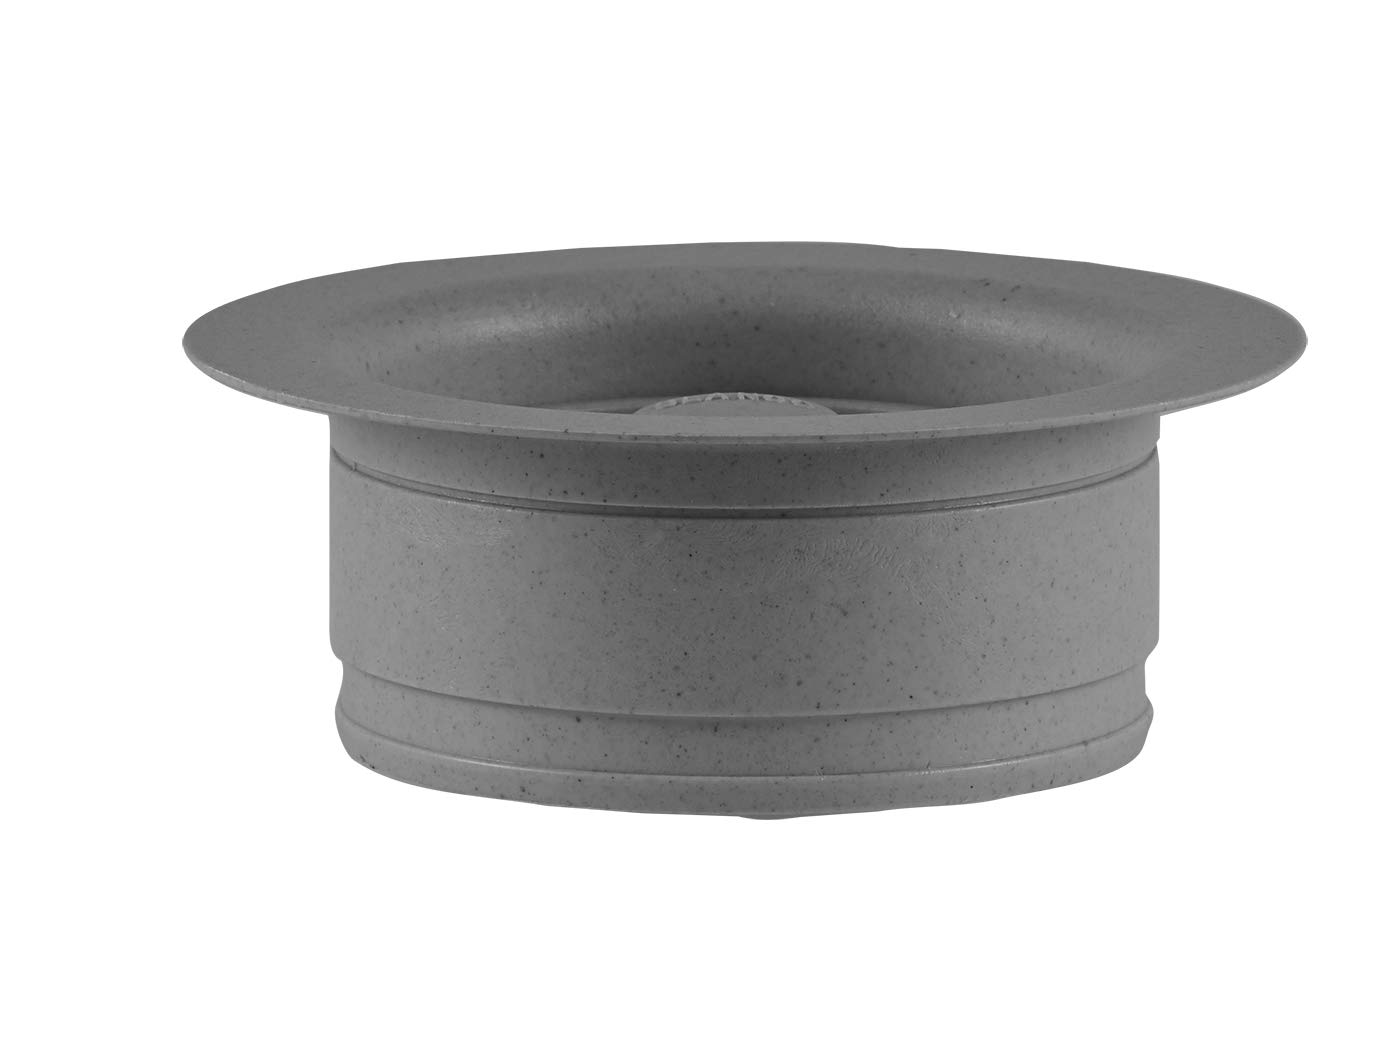 BLANCO 442229 SILGRANIT Coordinated Sink Waste Flange, 3.5'', Metallic Gray by Blanco